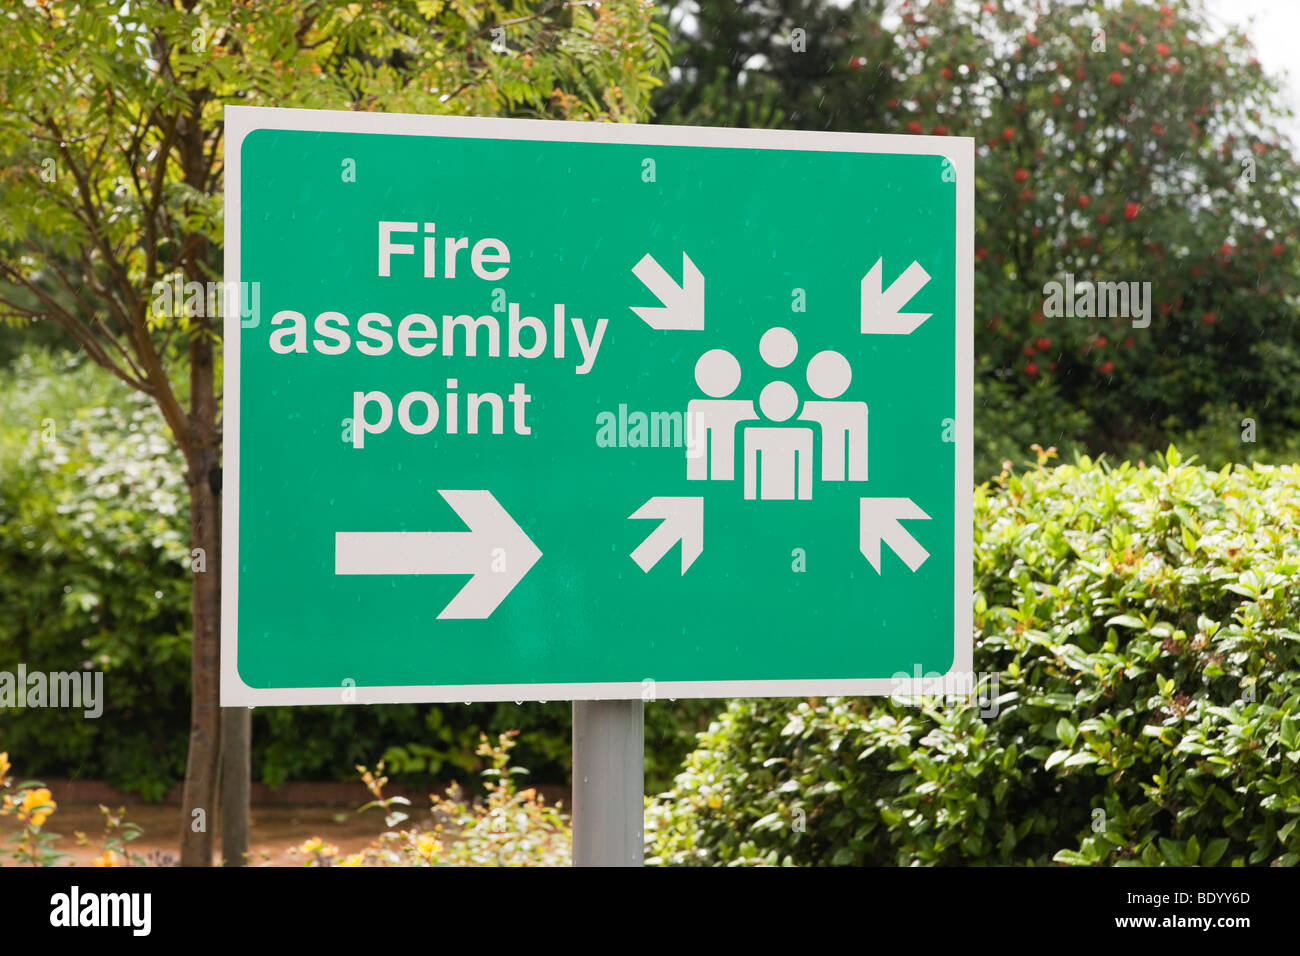 Hotel fire safety assembly point sign UK 2009 - Stock Image